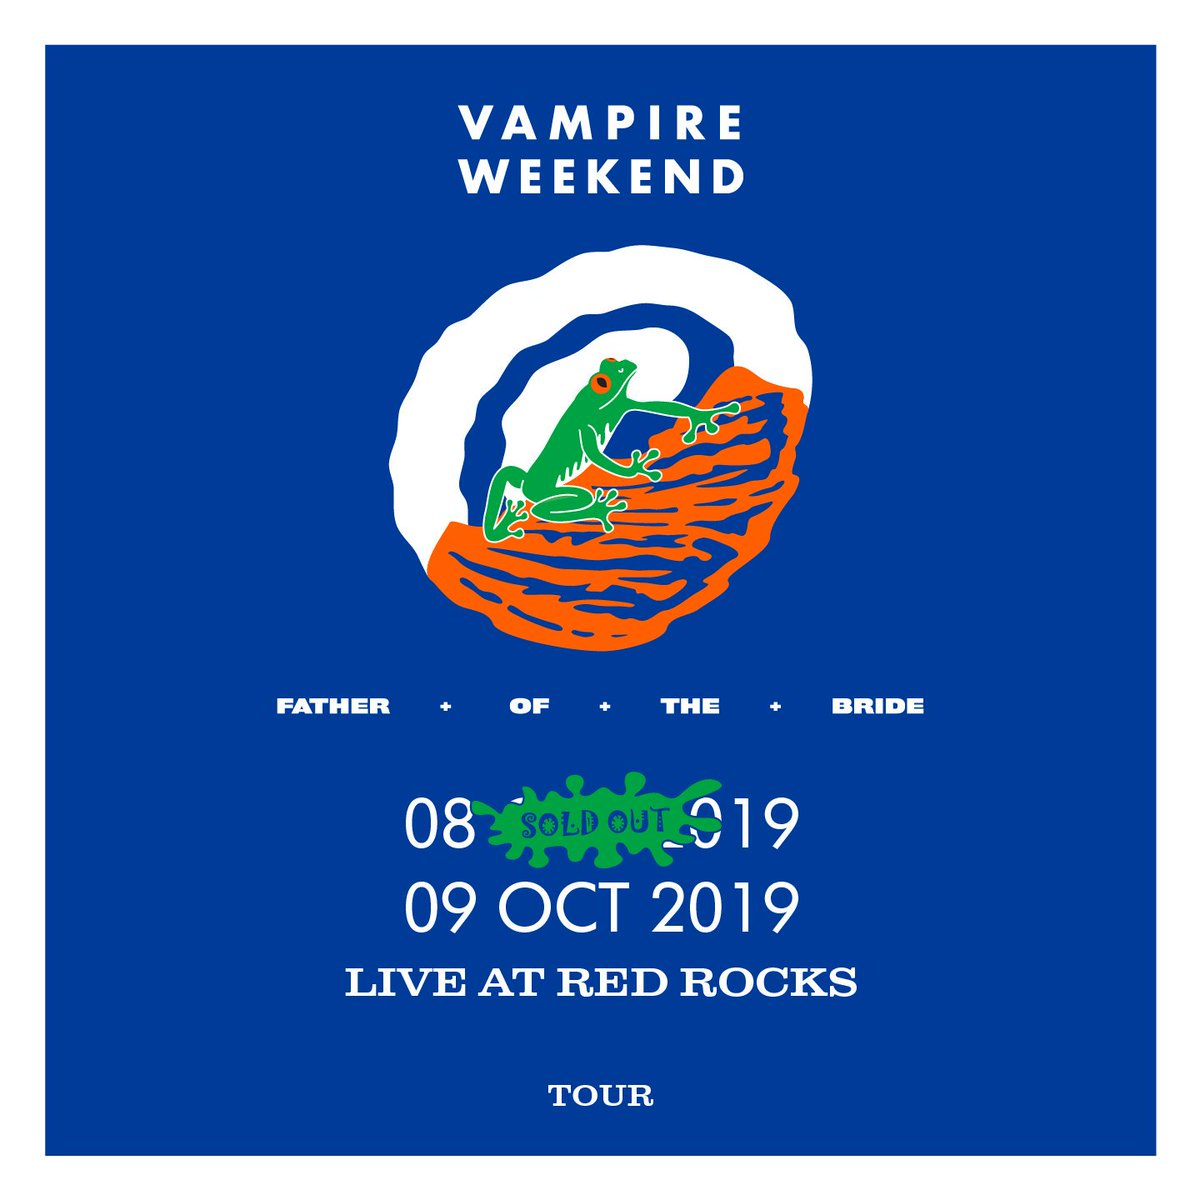 A few weeks until back to back nights at Red Rocks. A few tickets remaining for #2 at VampireWeekend.com